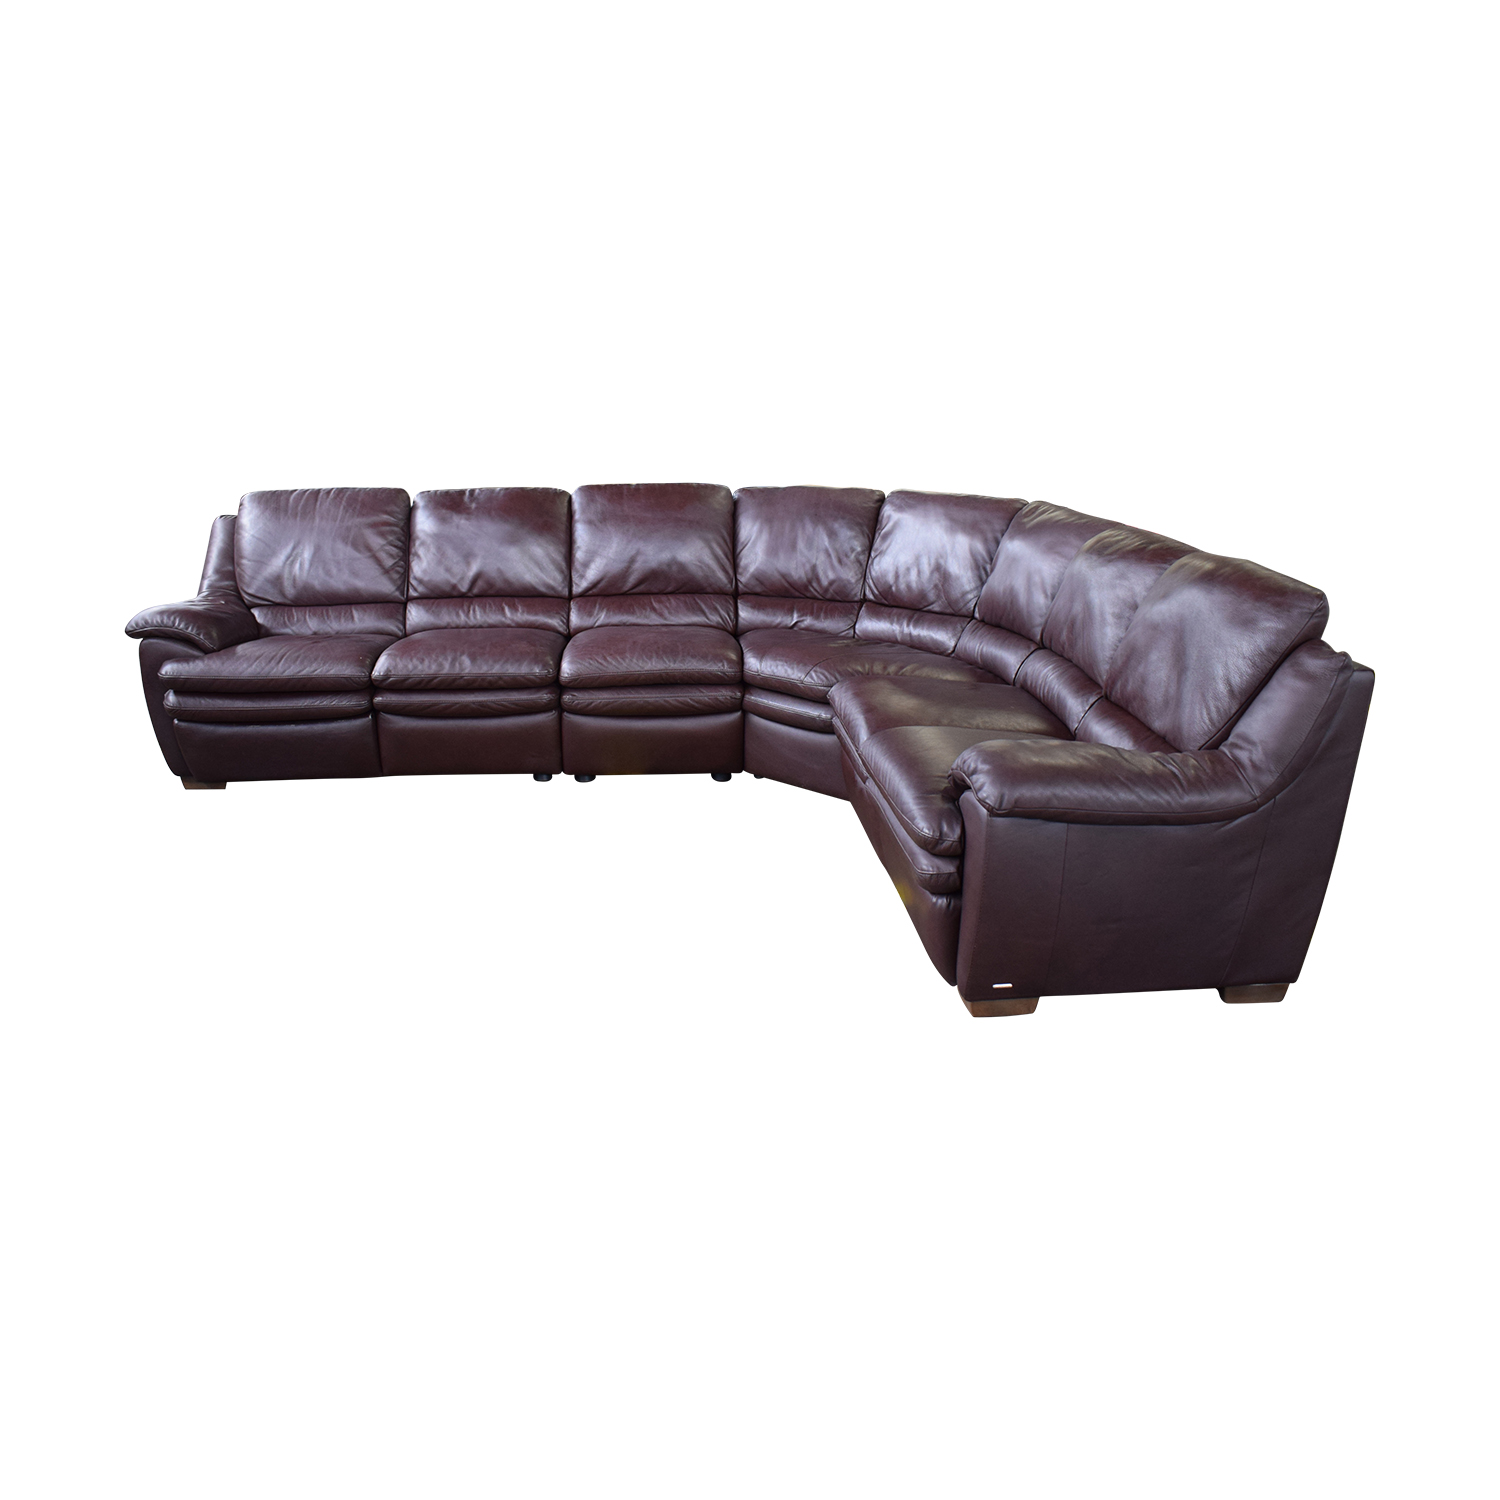 69% OFF - Natuzzi Natuzzi Reclining Sectional Sofa / Sofas